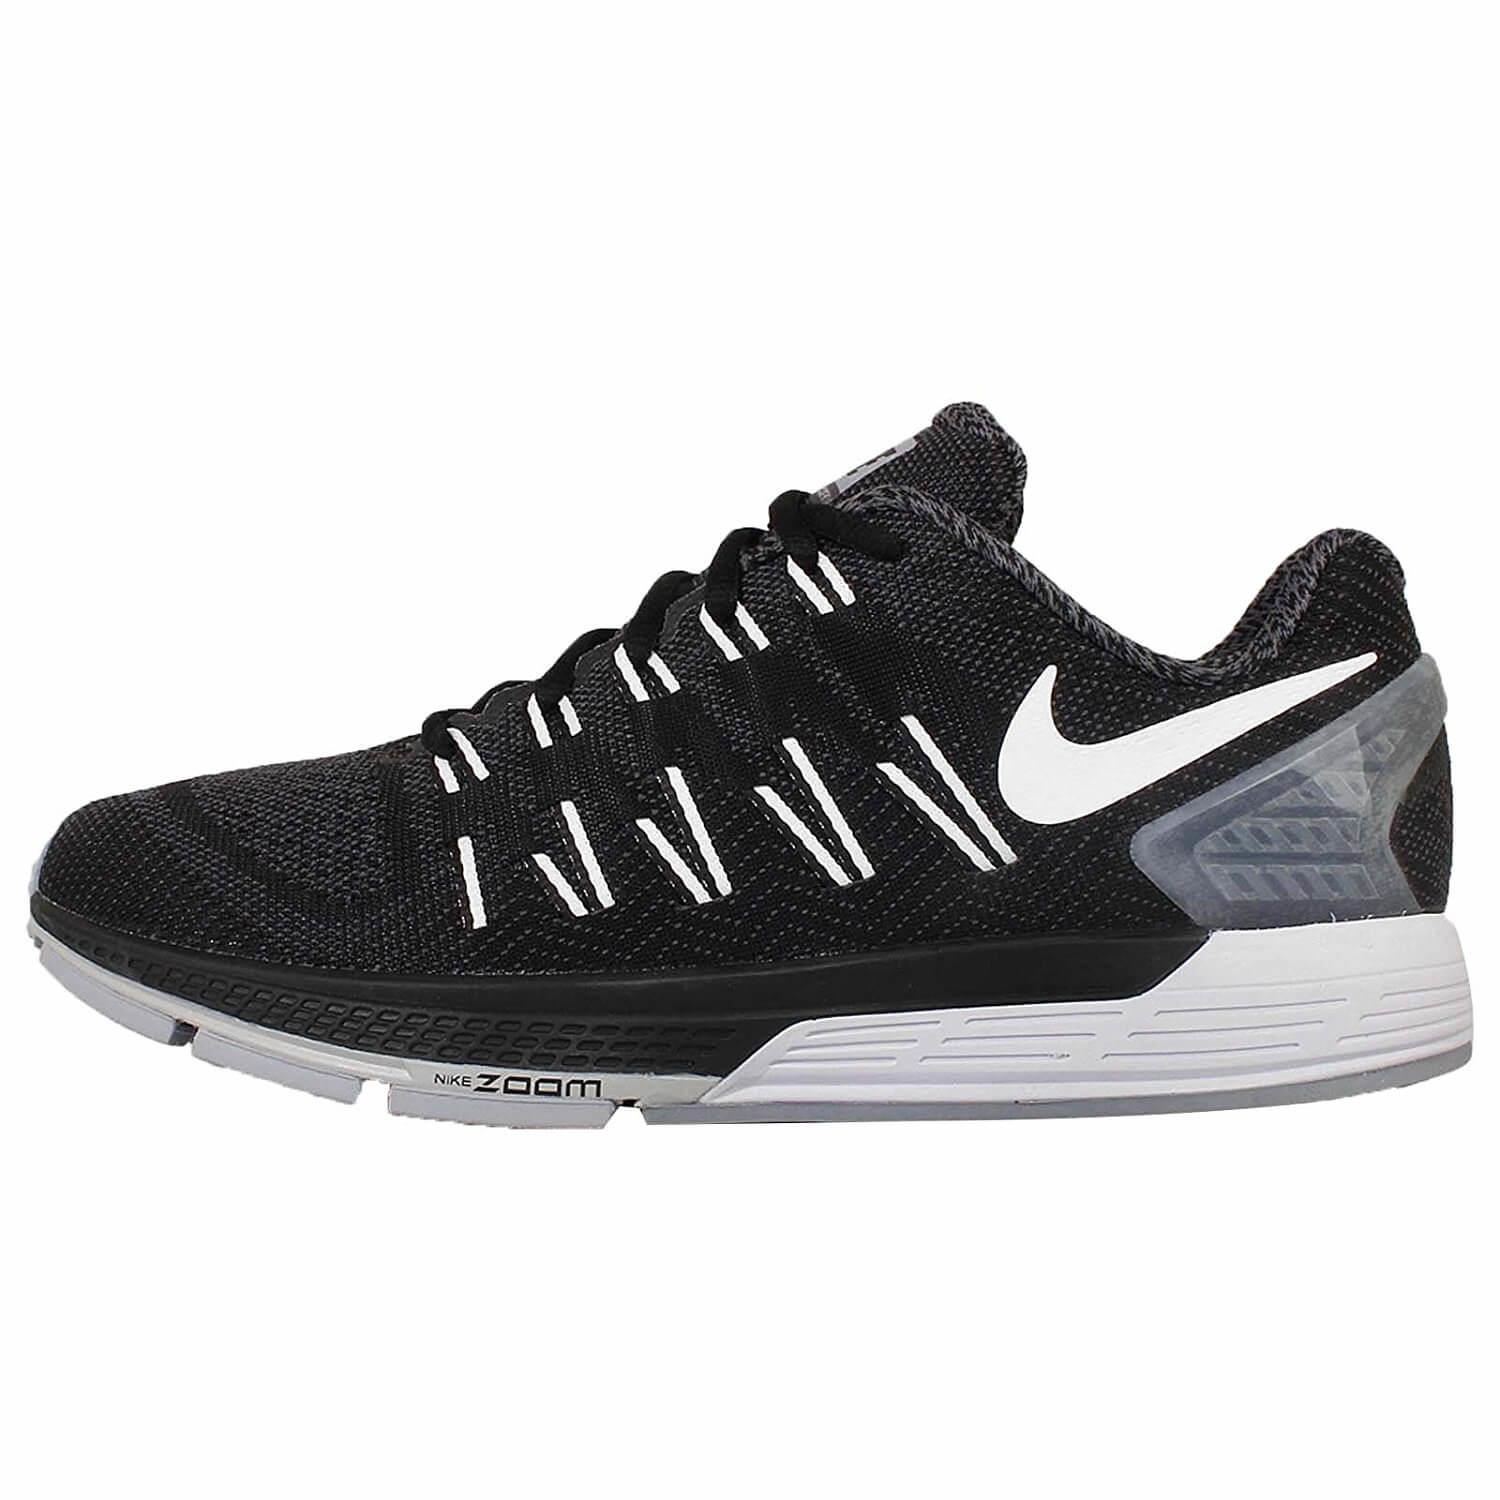 The Nike Air Zoom Odyssey comes in numerous stylish color choices.